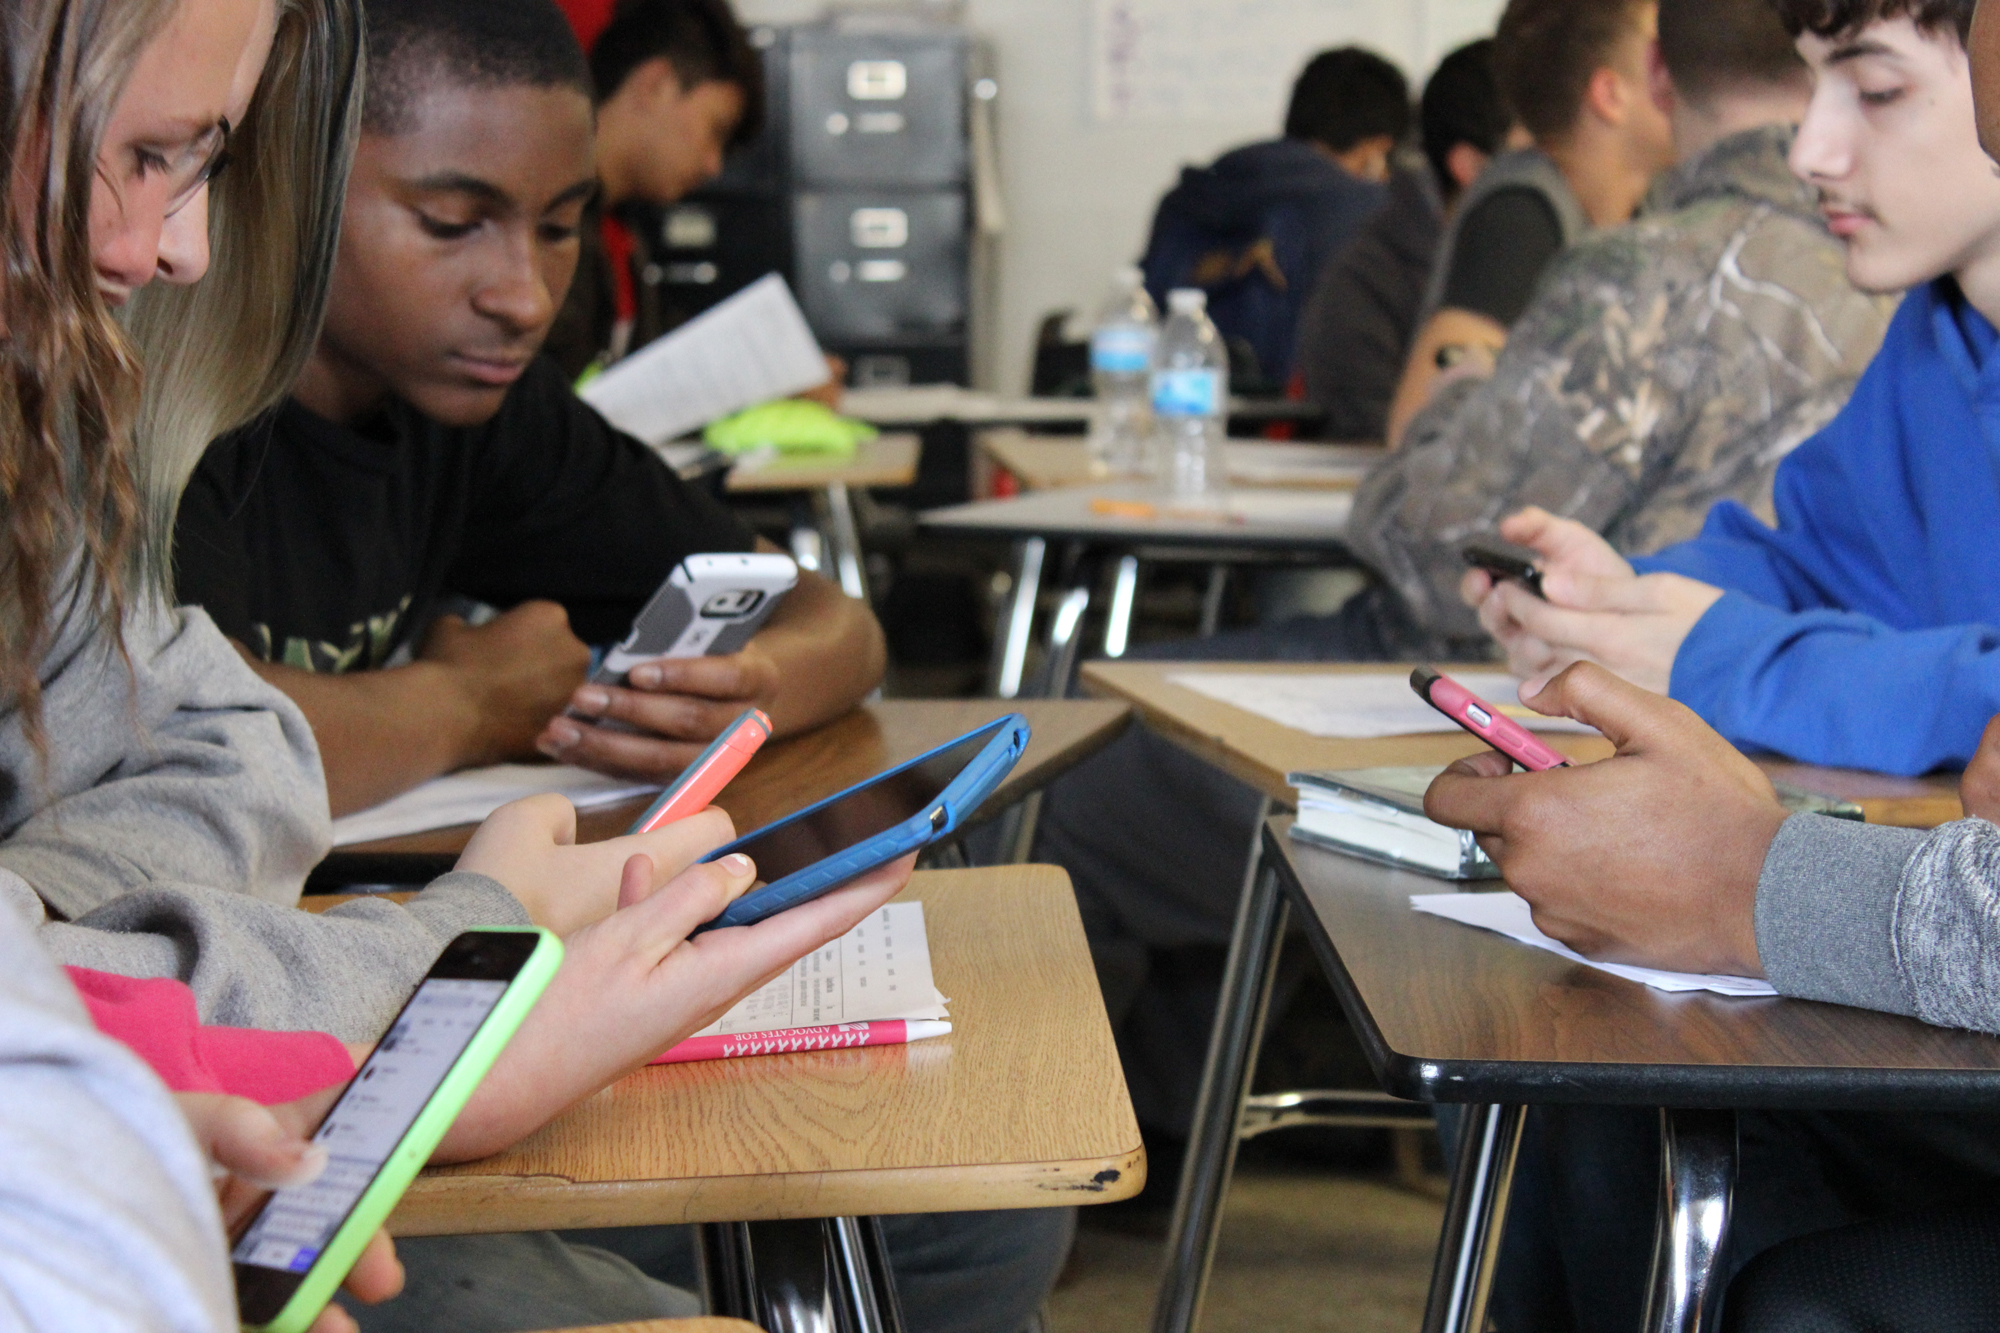 Will giving greater student access to smartphones improve learning? - The Hechinger Report